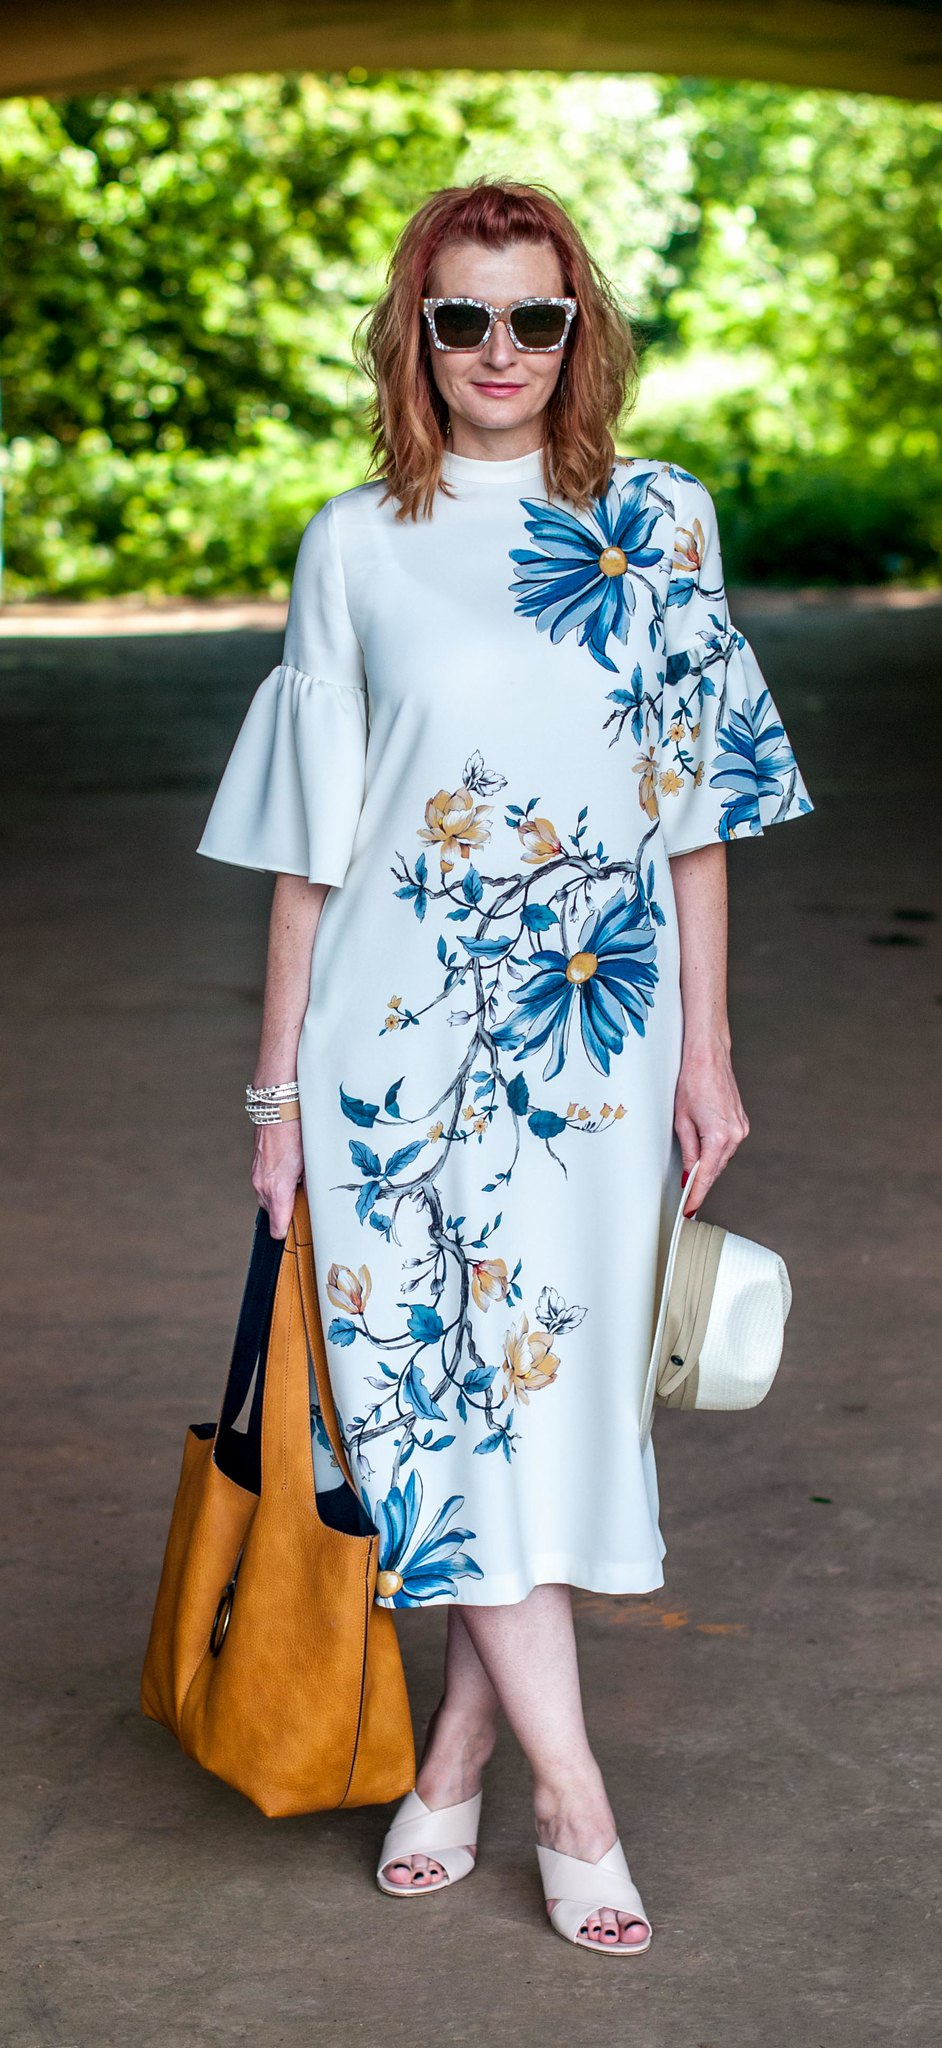 Wedding guest or garden party outfit: Marks & Spencer floral midi dress with flared sleeves  nude cage heel mules  pearl sunglasses | Not Dressed As Lamb, over 40 style